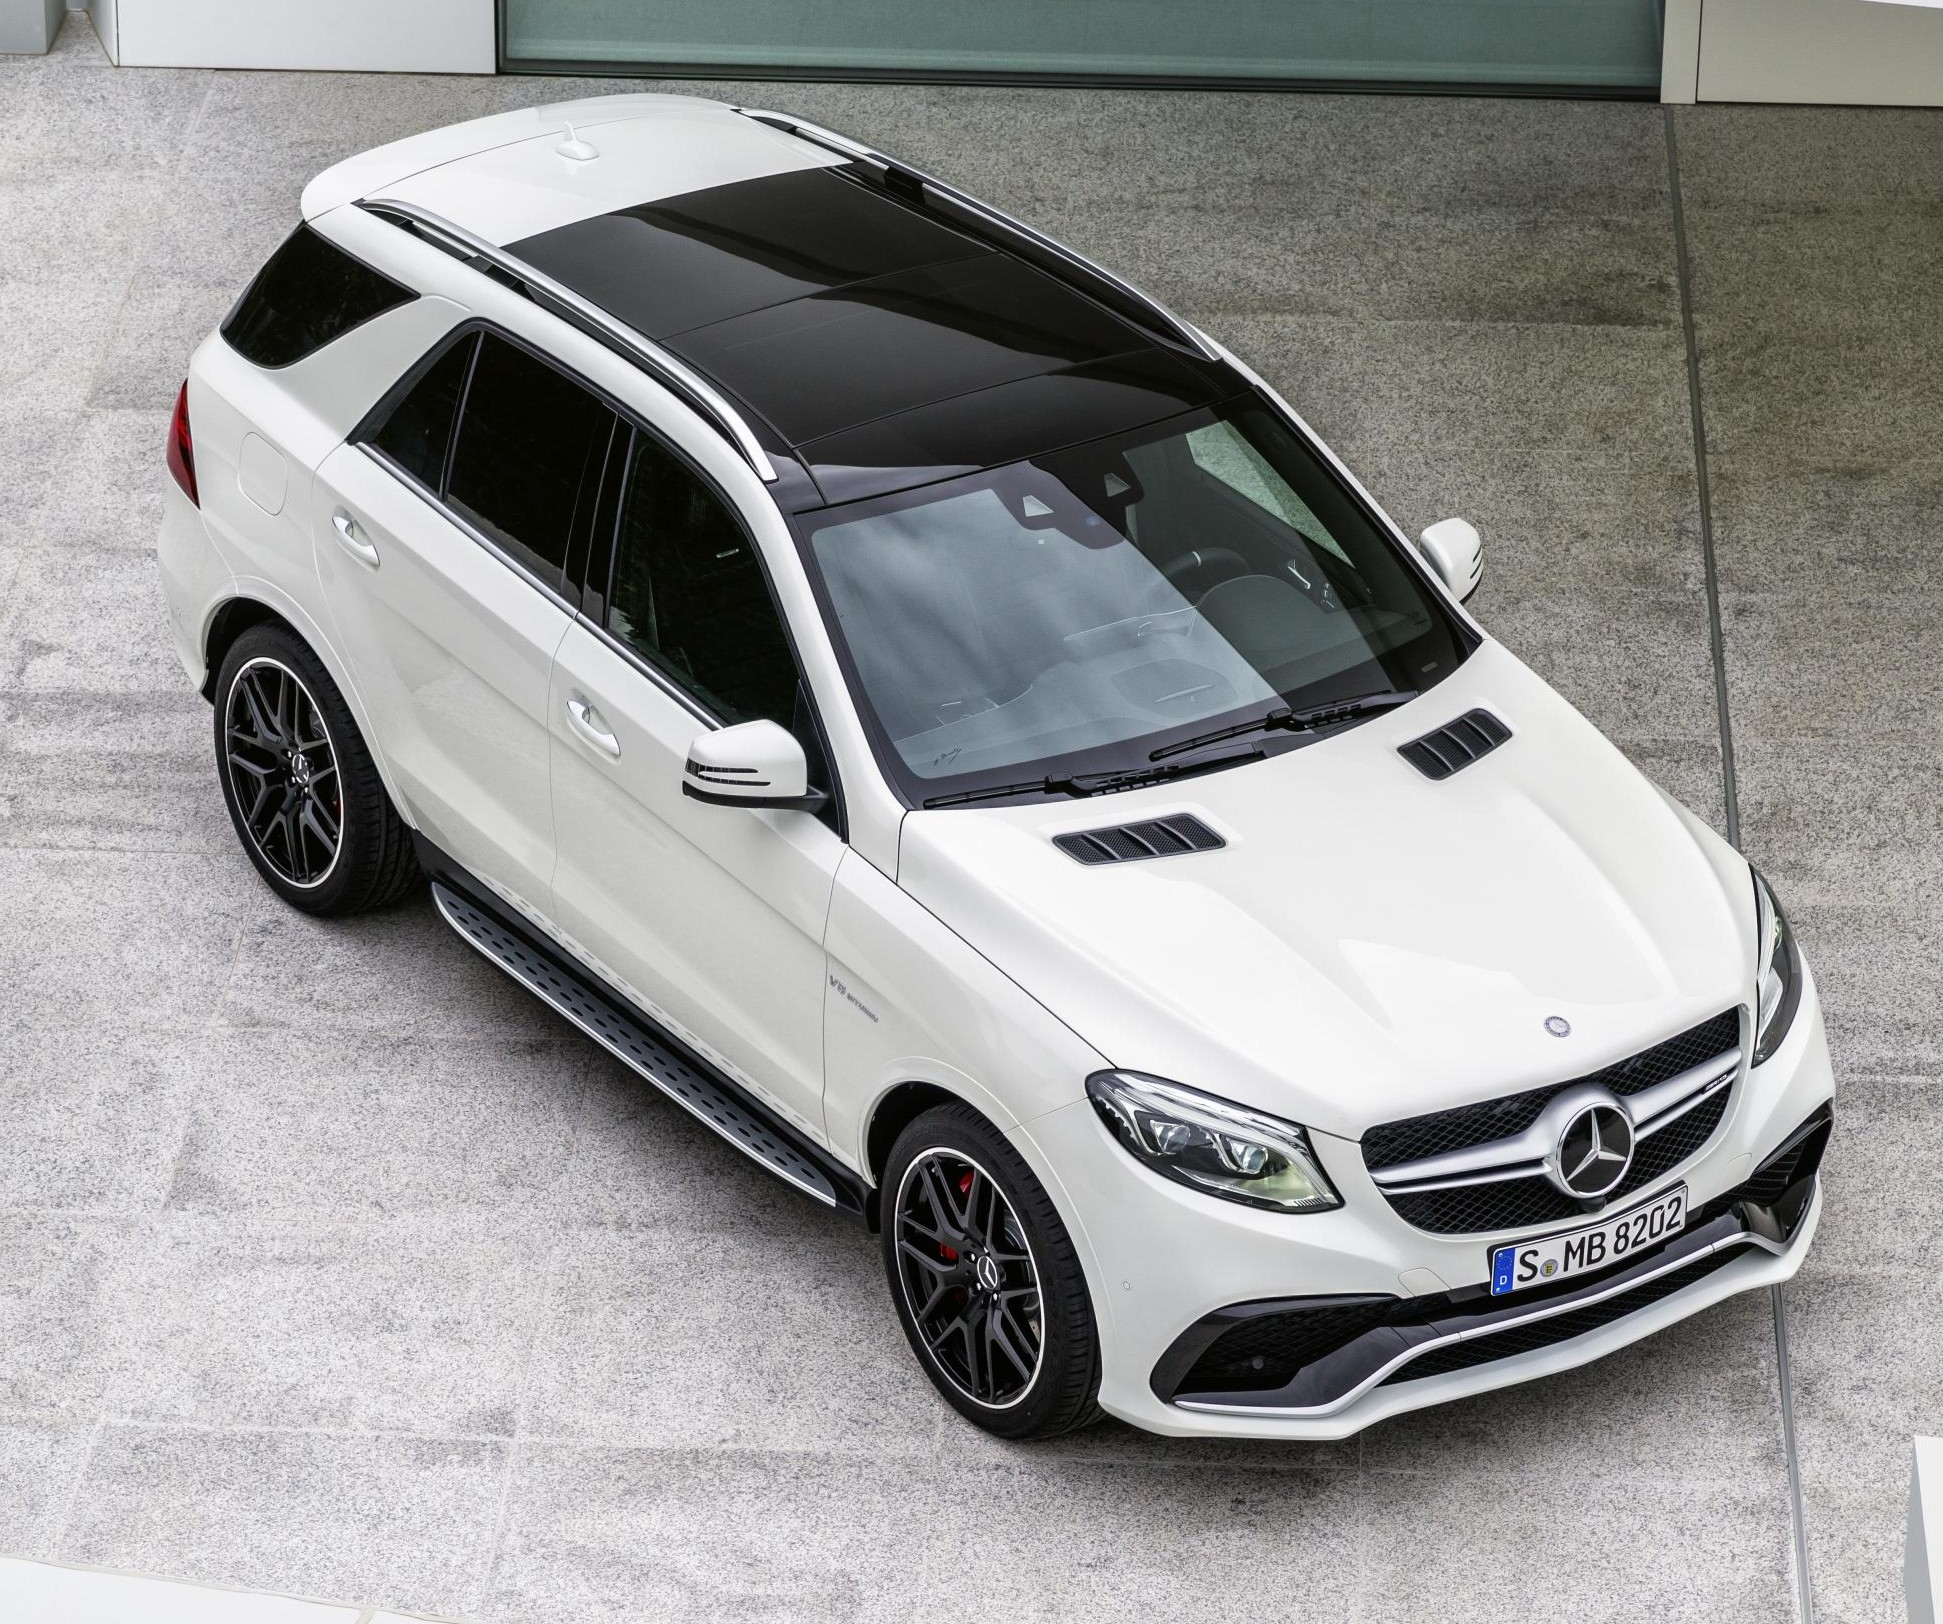 WORLD PREMIERE FOR THE MERCEDES-BENZ GLE AND MERCEDES-AMG